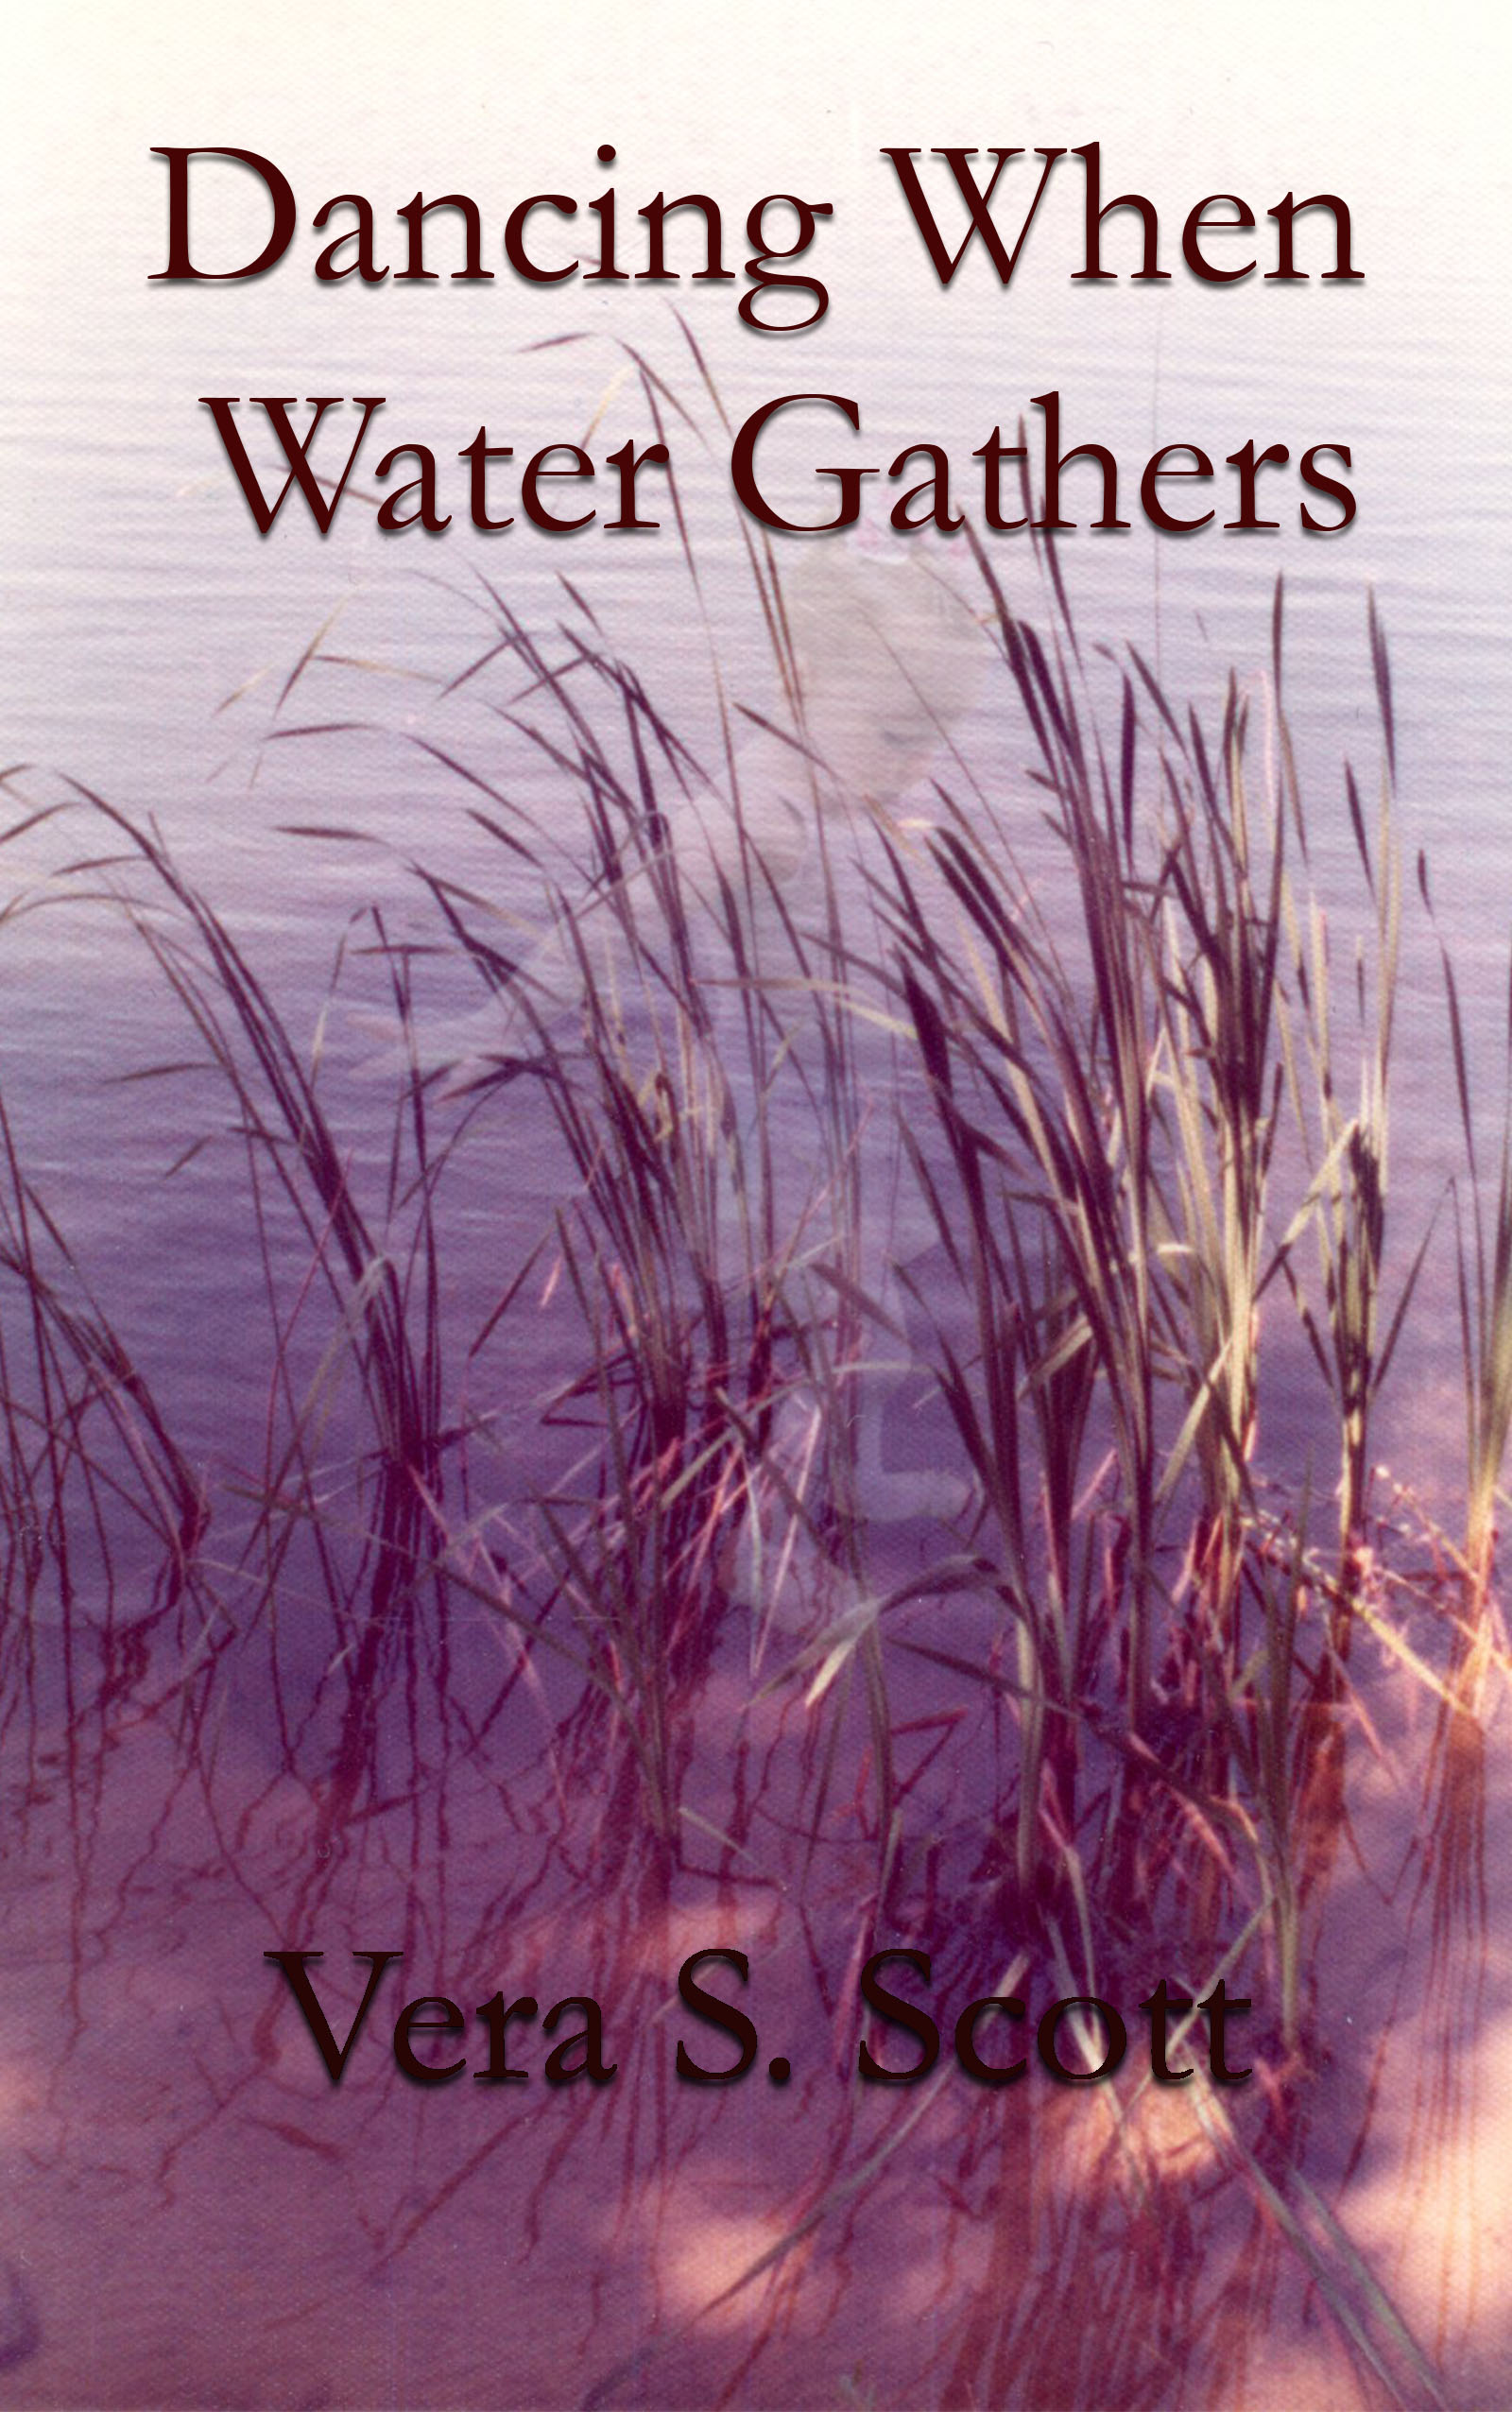 Reeds - Dancing when water gathers 1